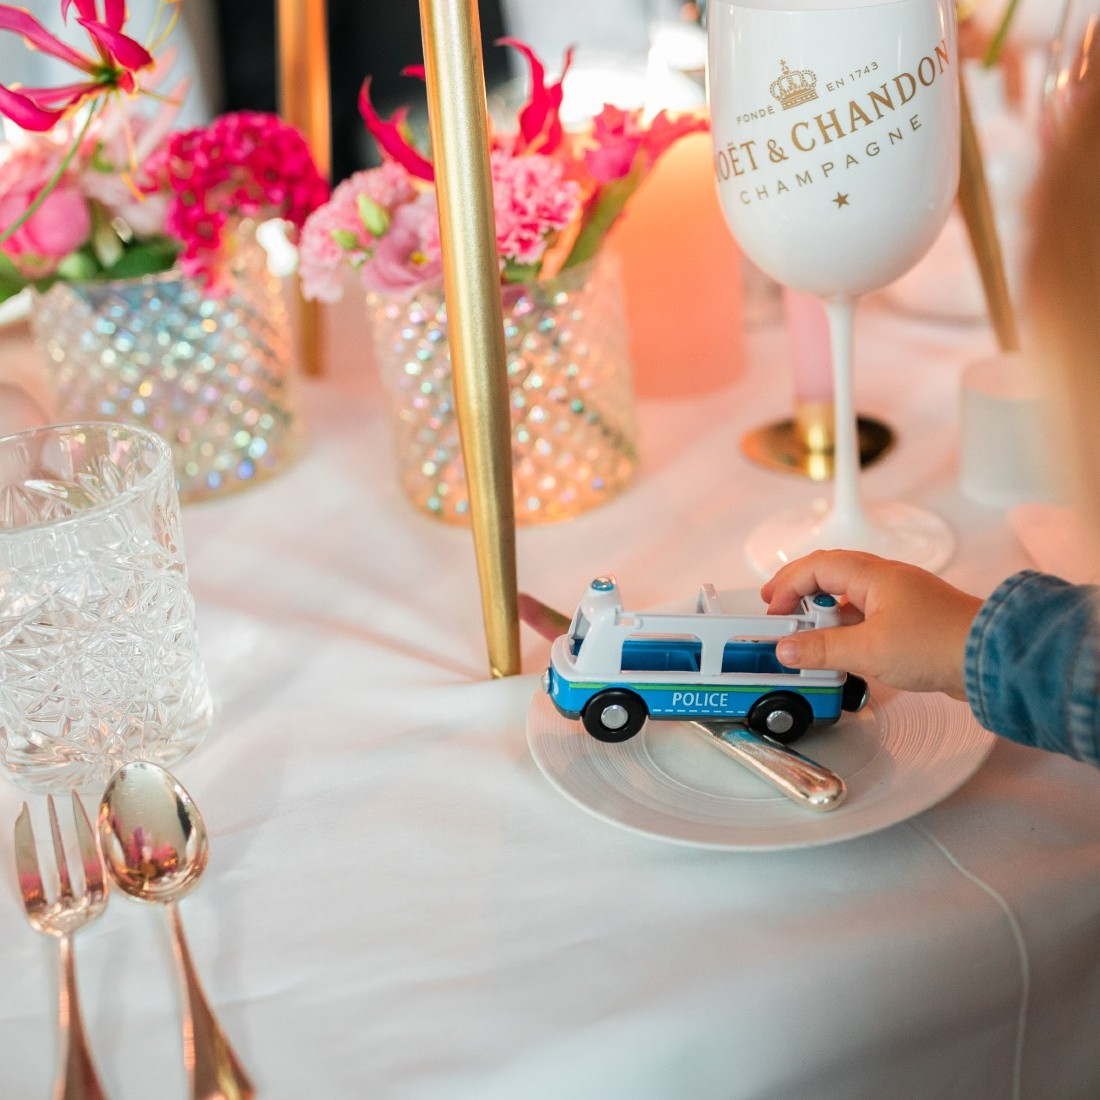 Private dinner vragen getuigen best man maid of honour styling champagne